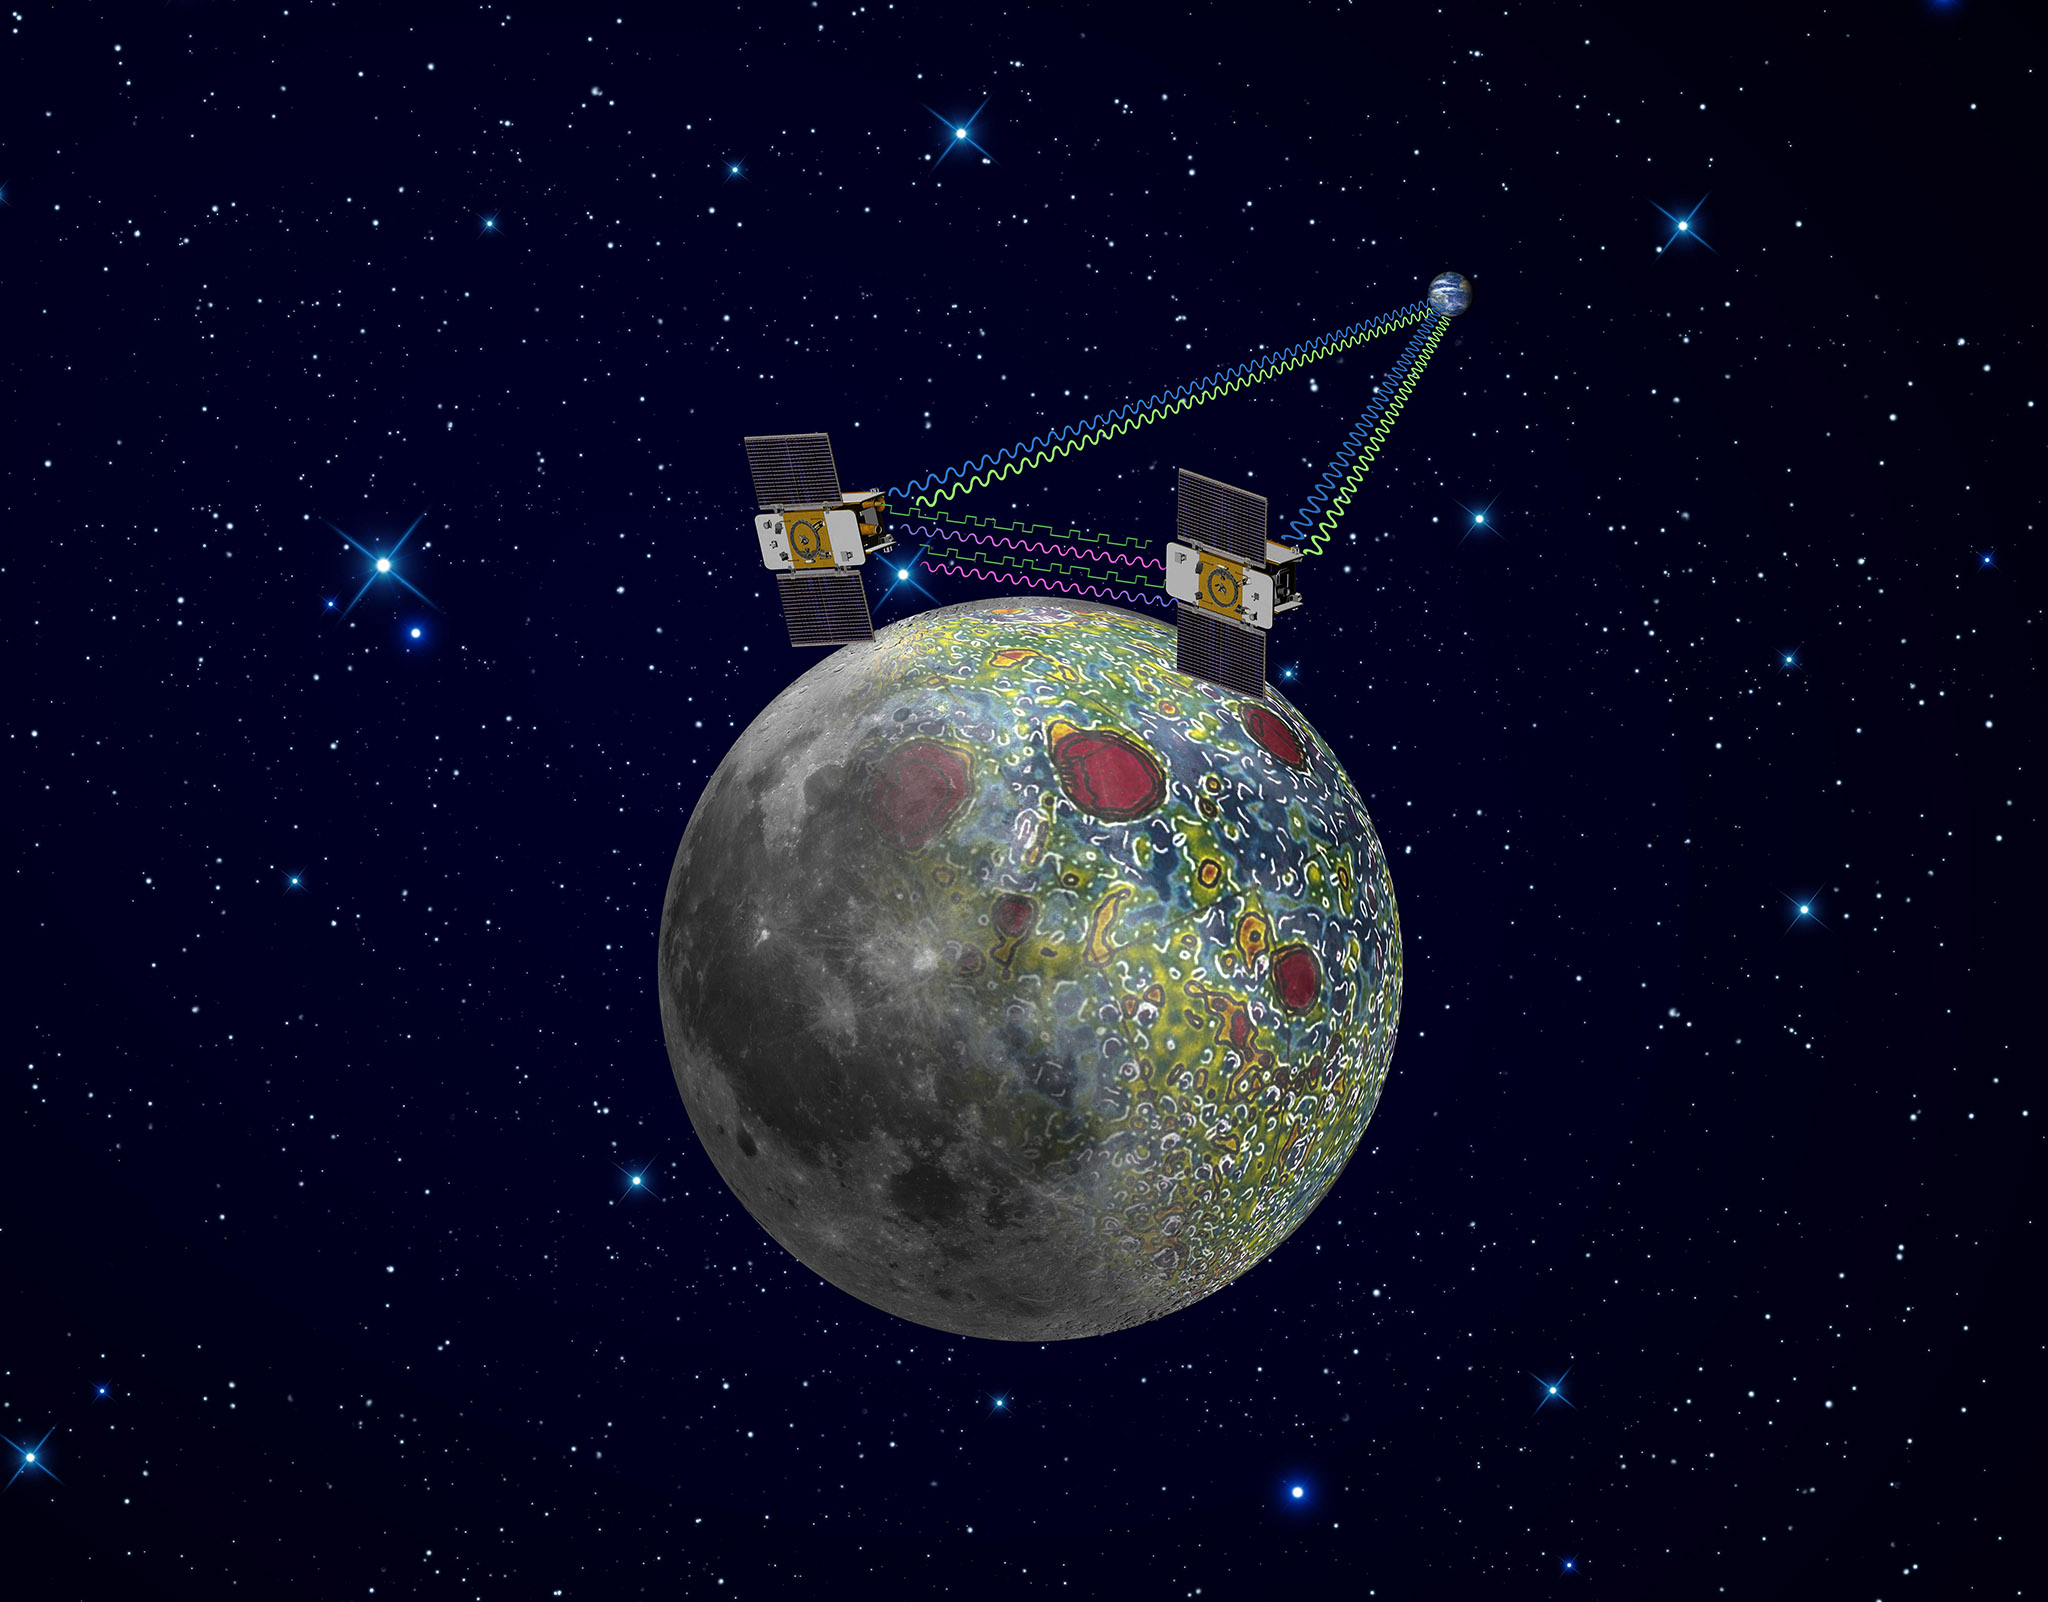 Using a precision formation-flying technique, the twin GRAIL spacecraft mapped the moon's gravity field, as depicted in this artist's rendering. Image credit: NASA/JPL-Caltech